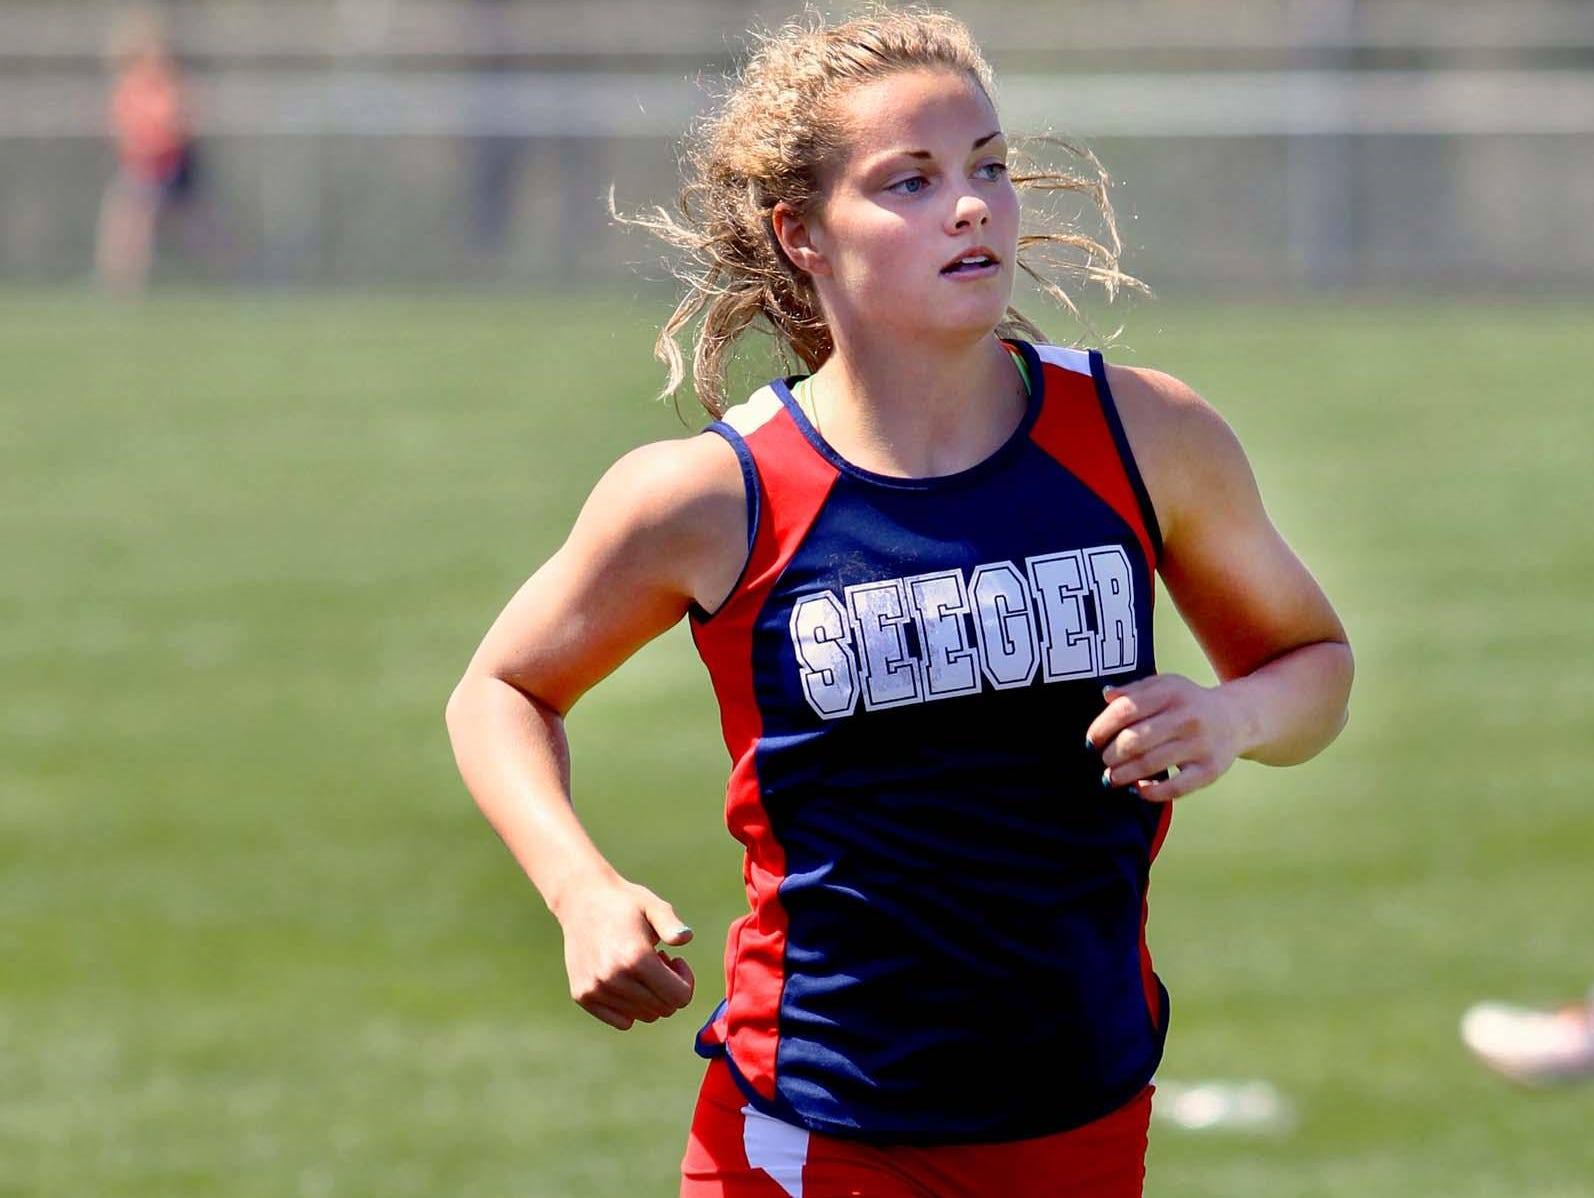 Becca Haussin of Seeger won the 800-meter race at the Covington Invitational track meet.